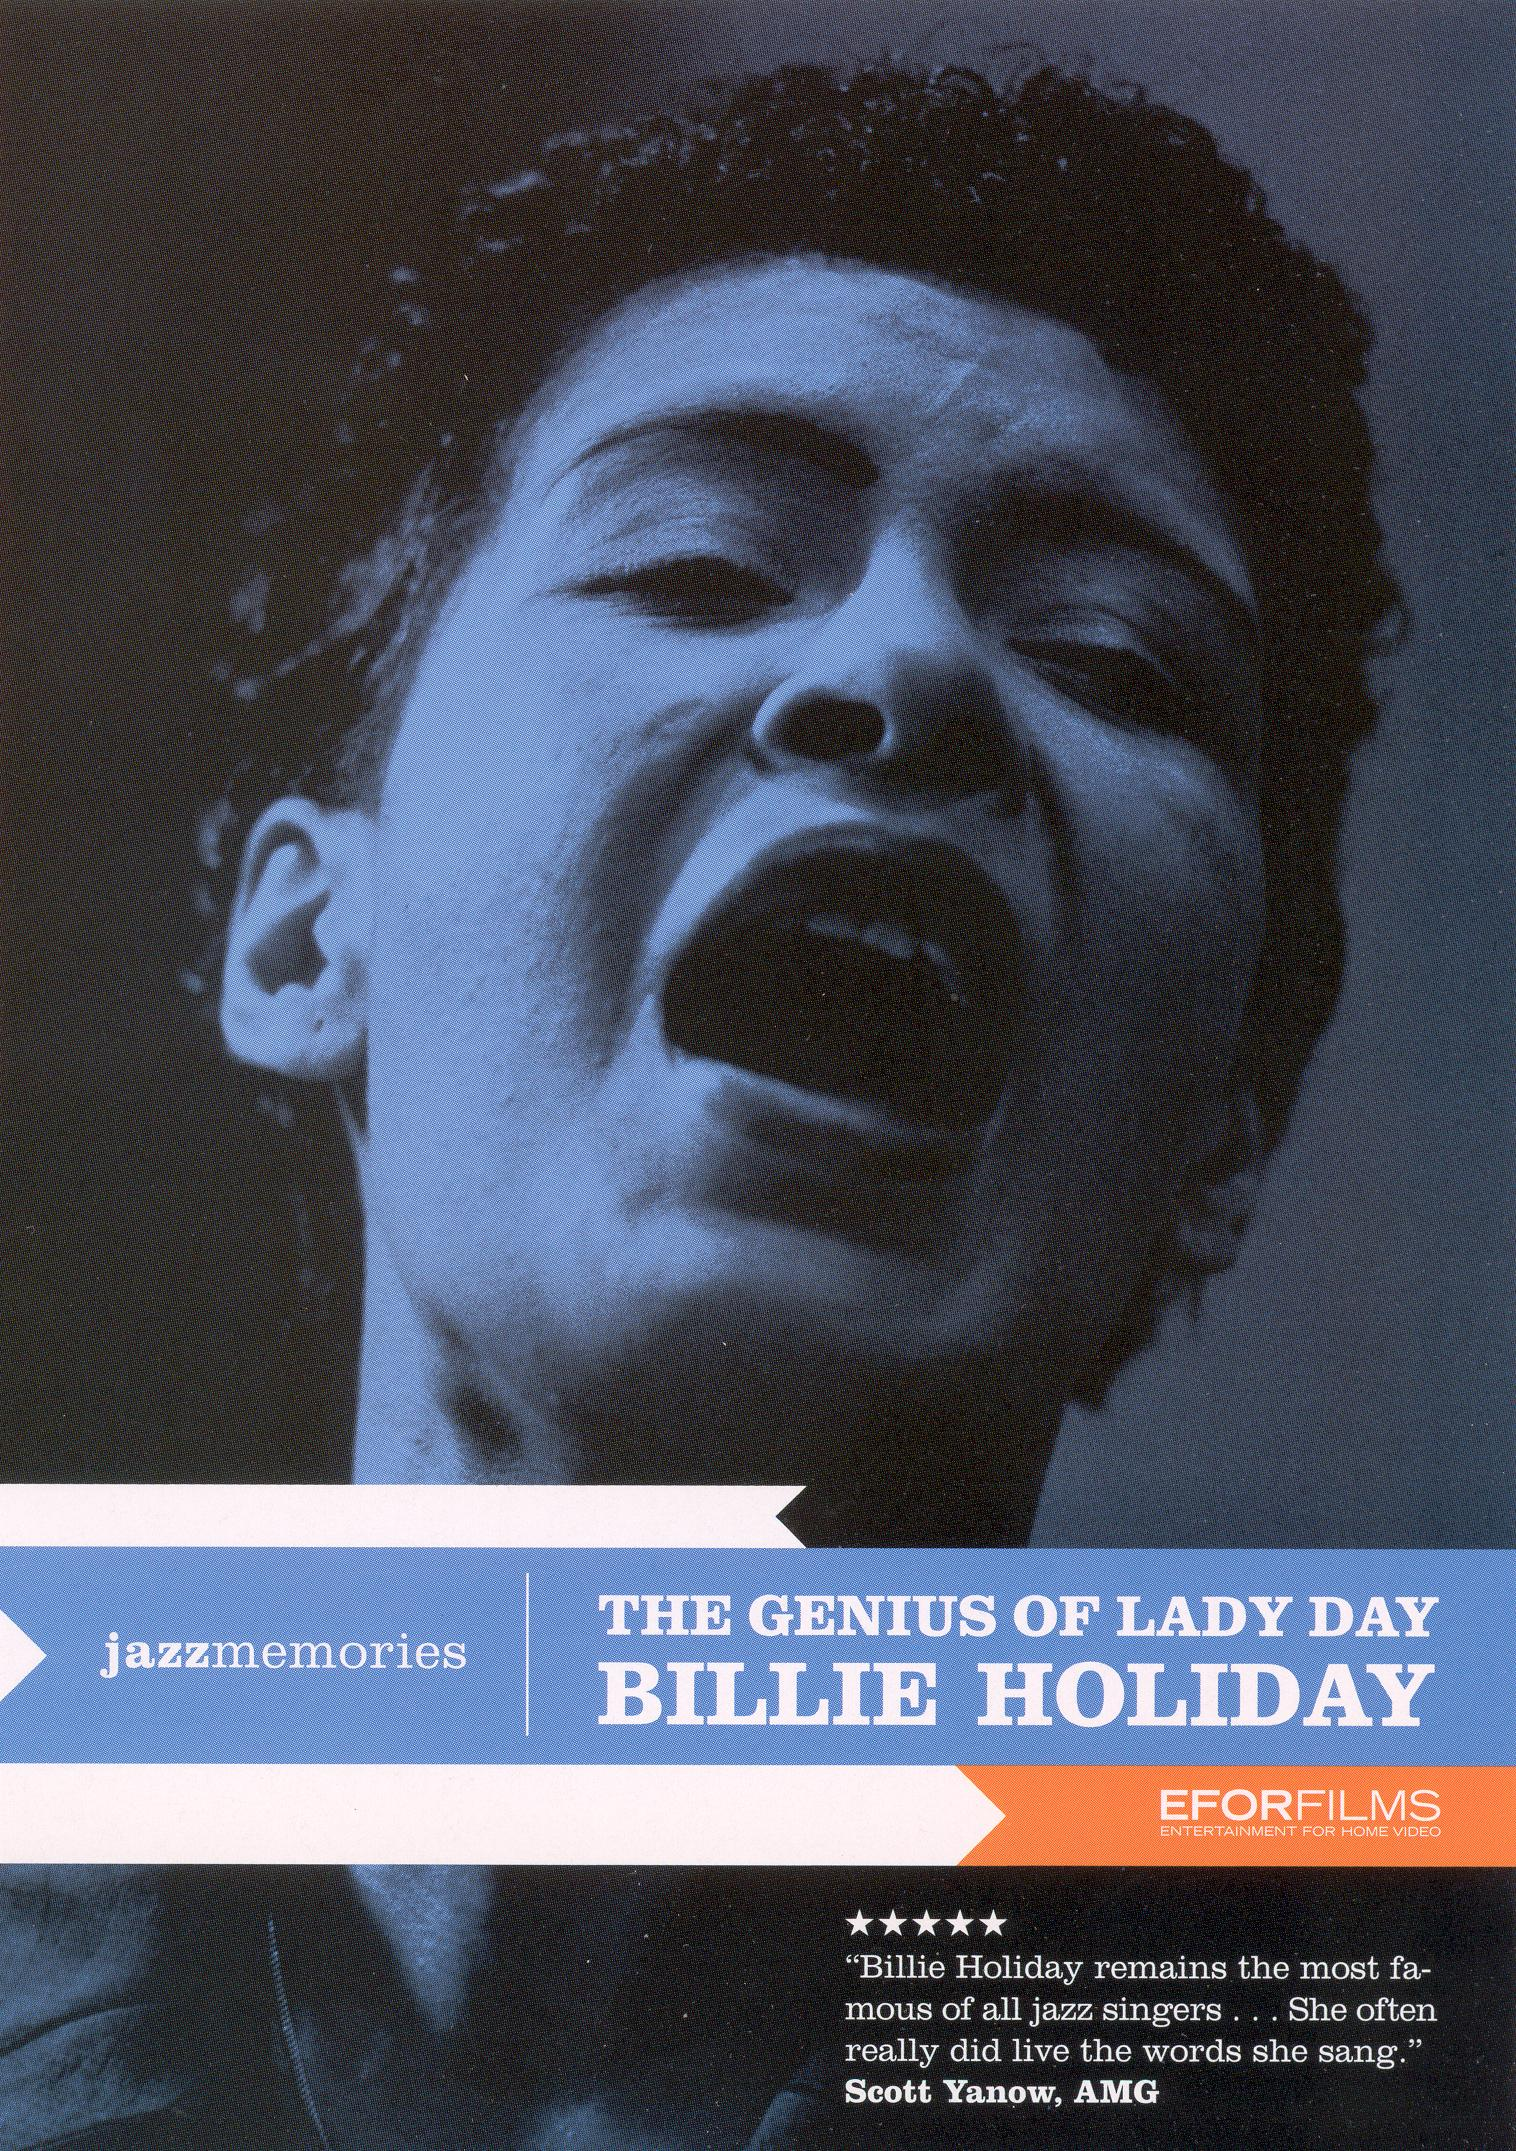 Billie Holiday: The Life and Artistry of Lady Day